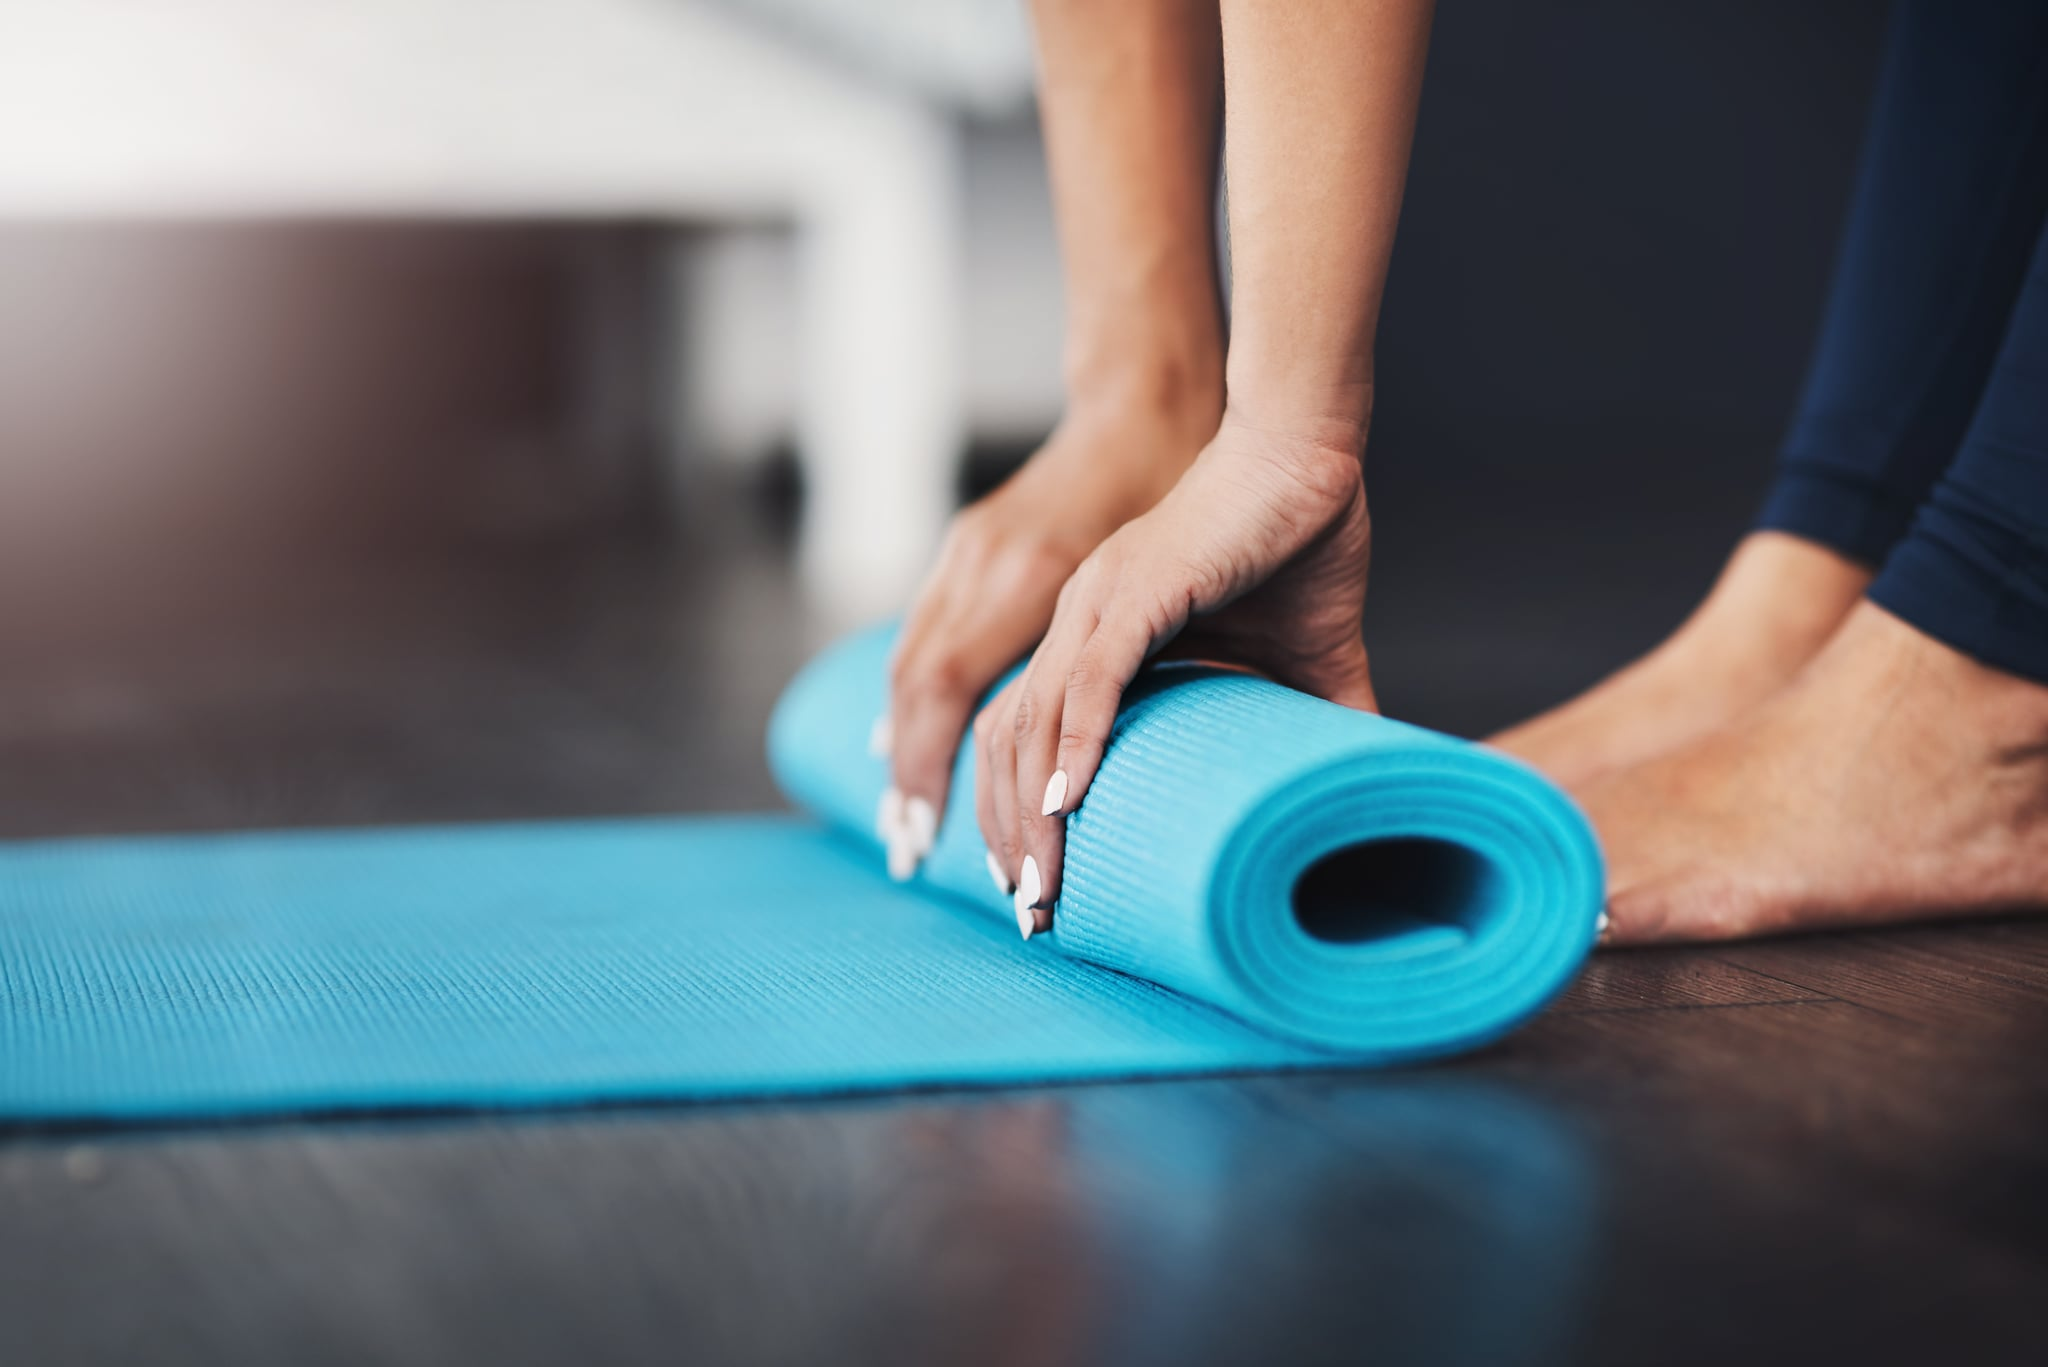 Cropped shot of an unrecognizable young woman rolling up her yoga mat in her bedroom